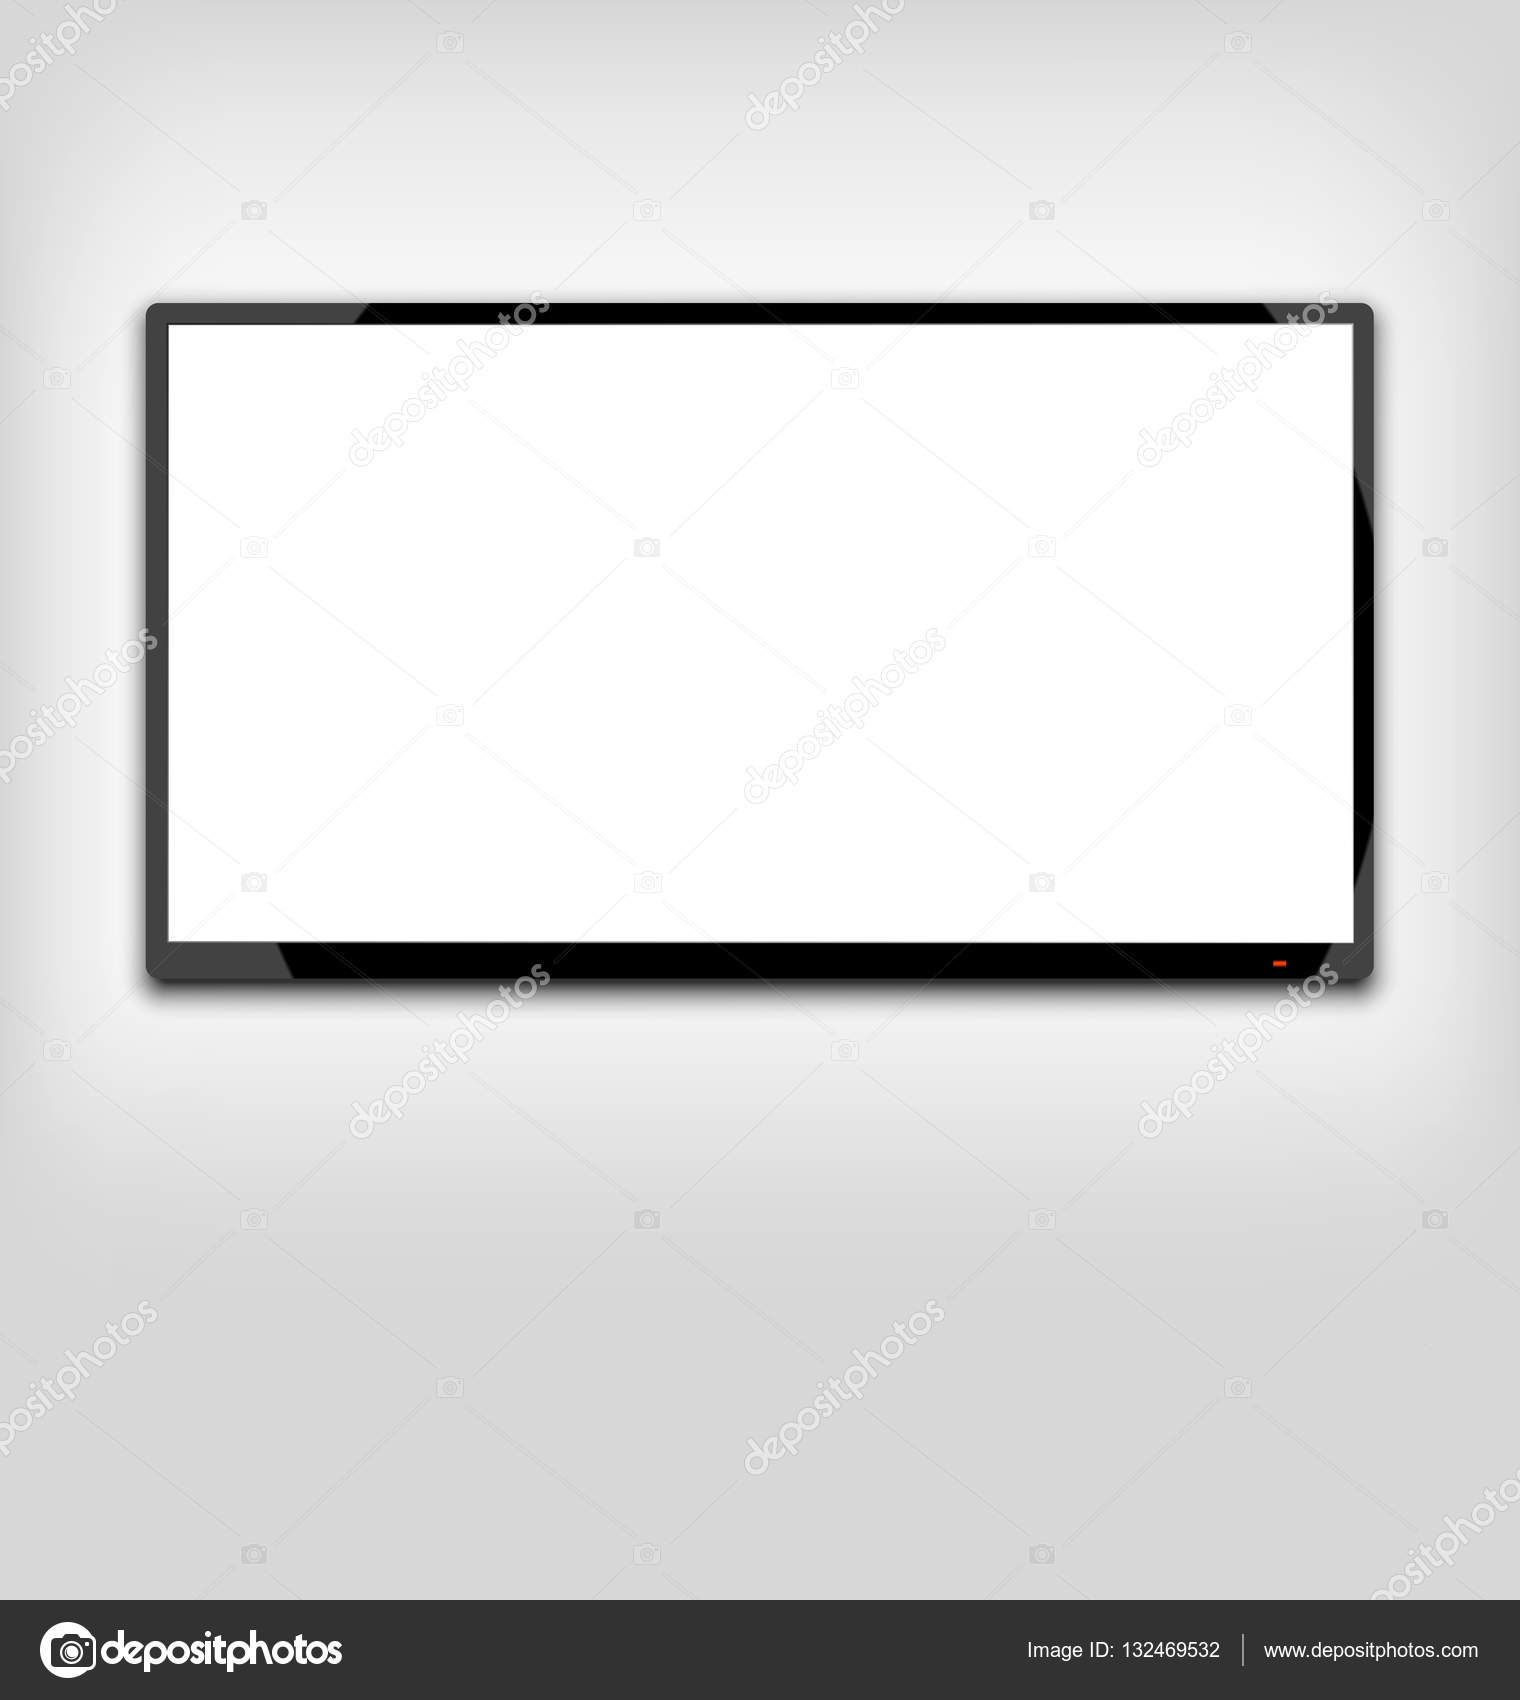 LCD o led tv pantalla colgada en la pared — Fotos de Stock ...